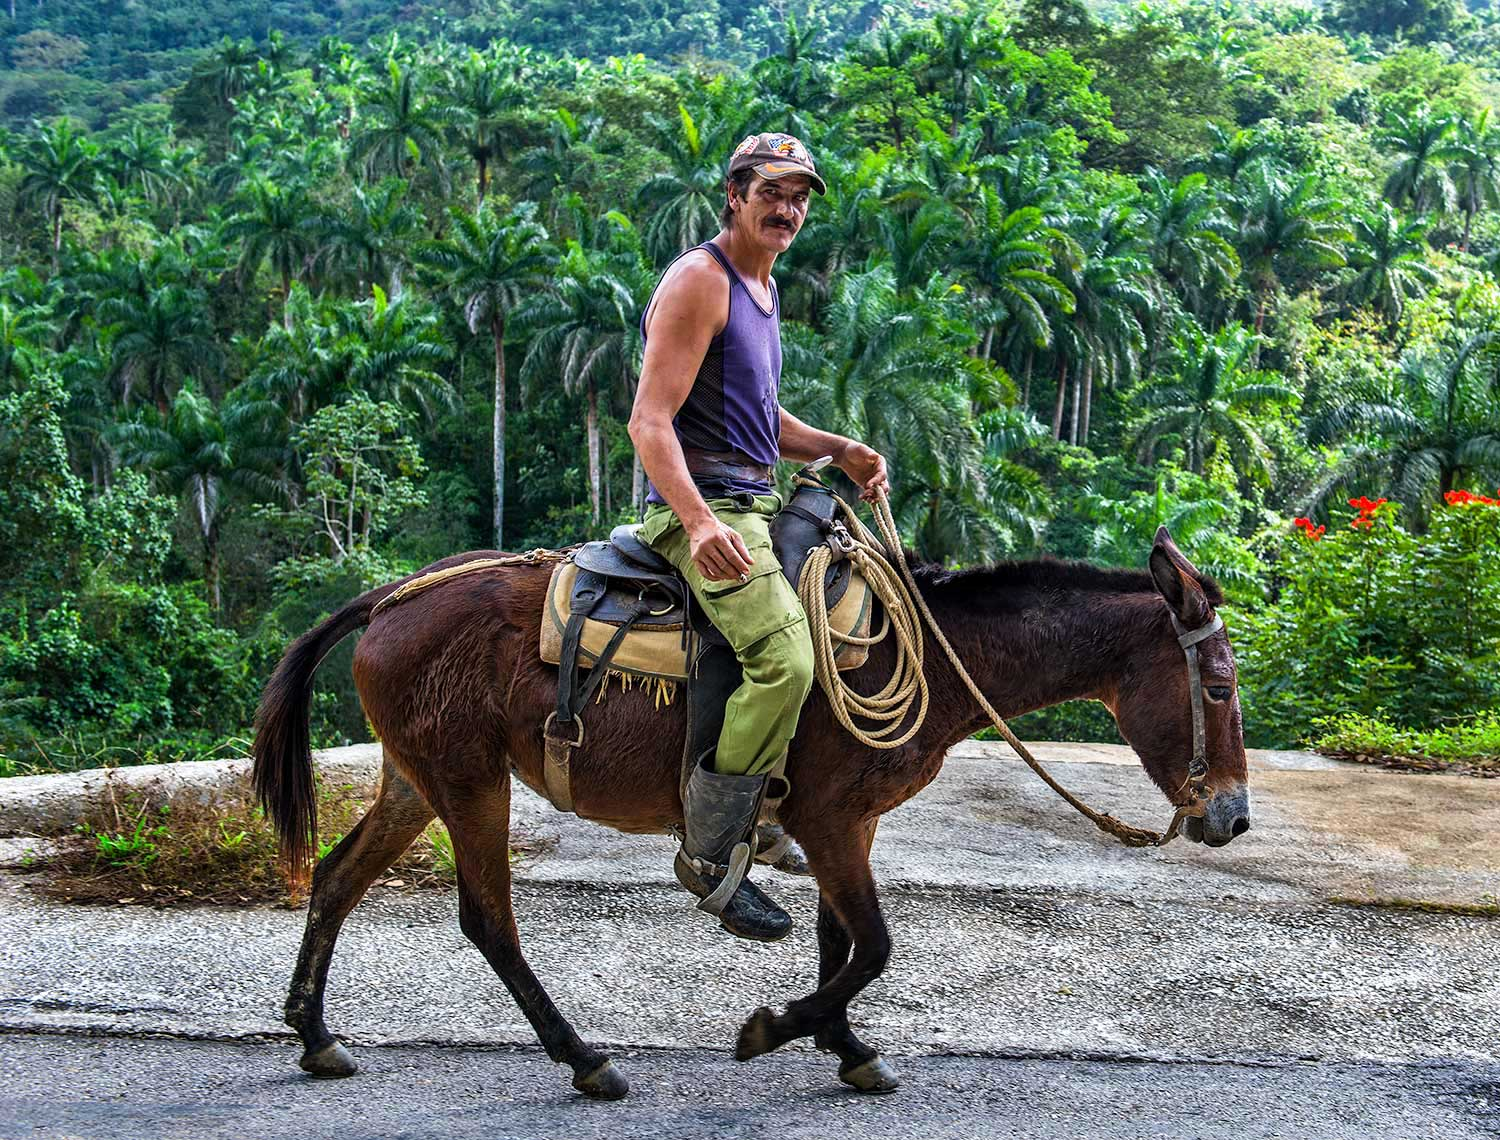 Cuban horseman, Topes de Collantes nature preserve